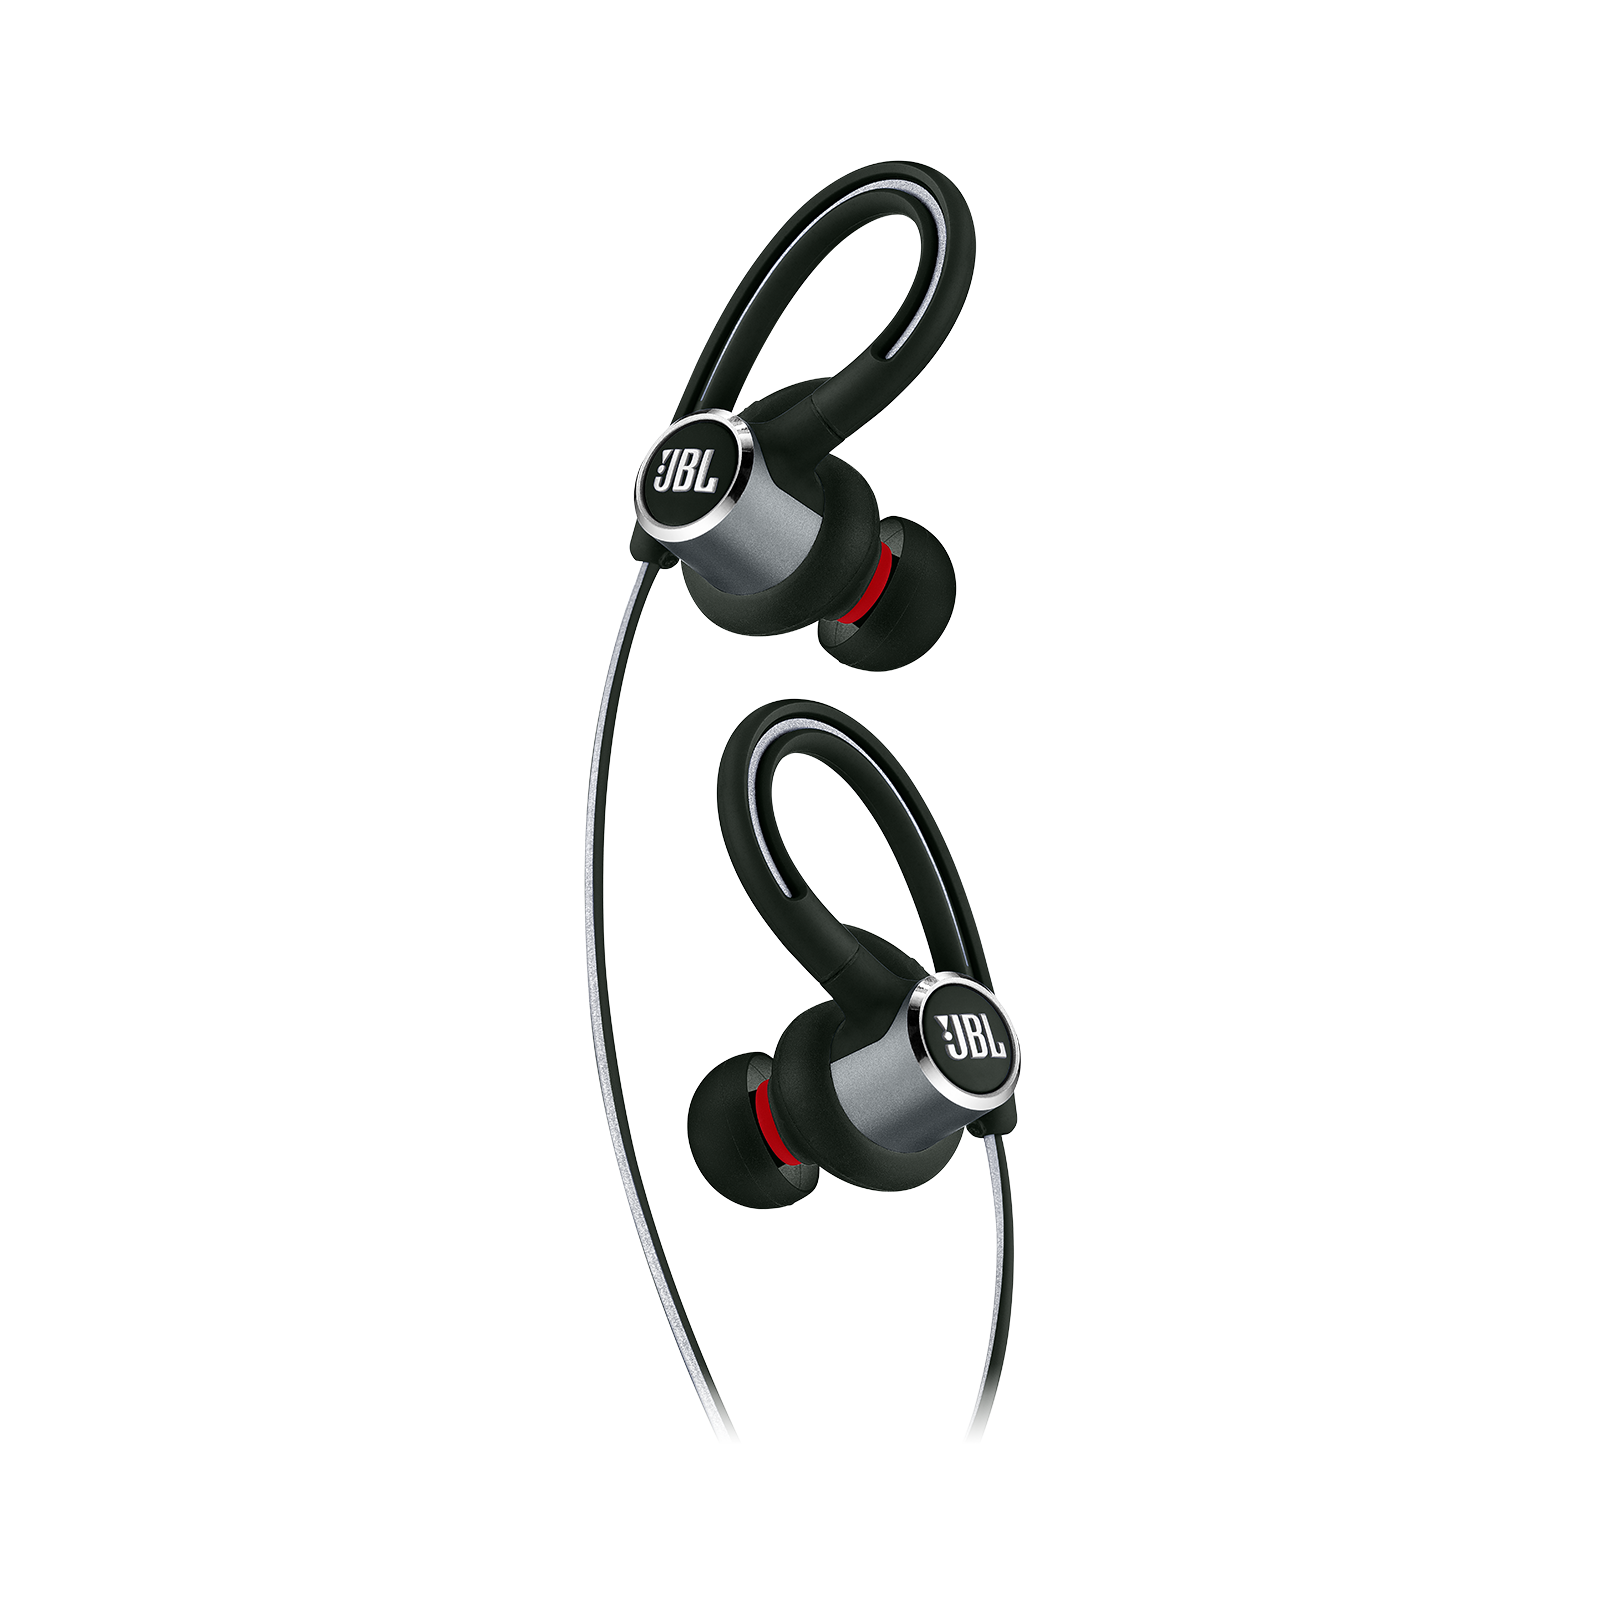 JBL Reflect Contour 2 - Black - Secure fit Wireless Sport Headphones - Detailshot 1